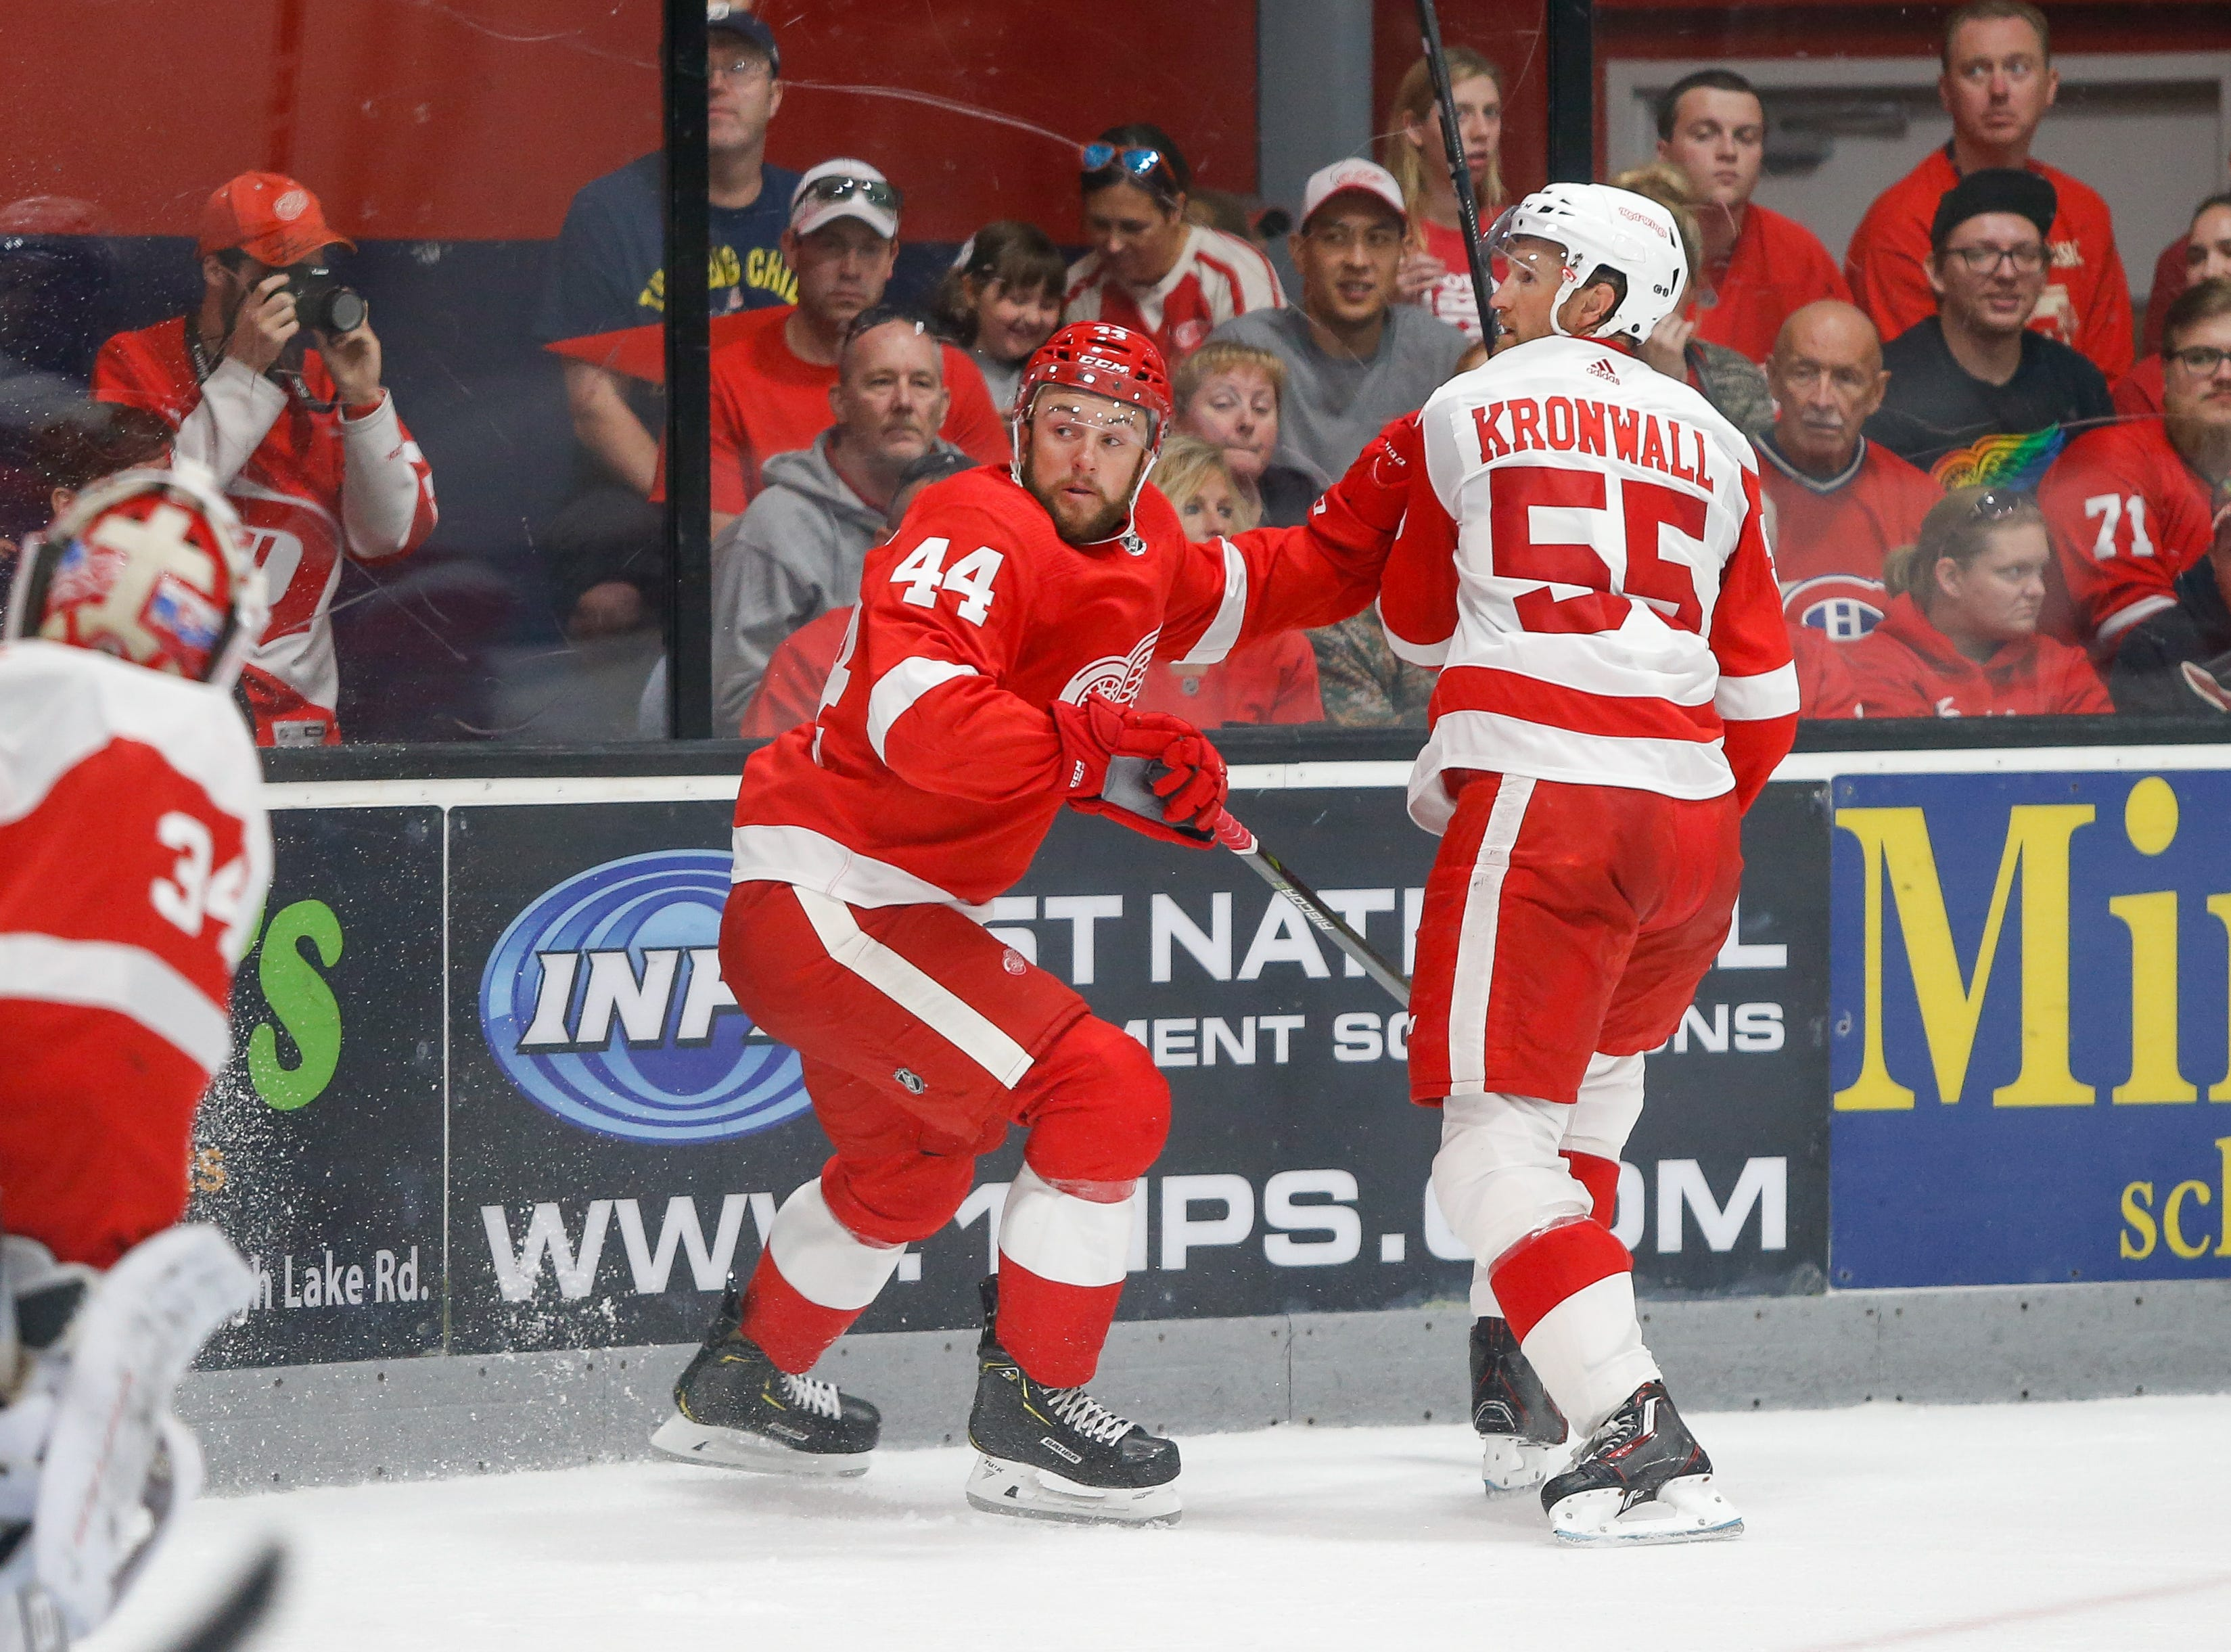 Dylan Sadowy and Niklas Kronwall look try to locate a high bouncing puck after knocking it into the boards.